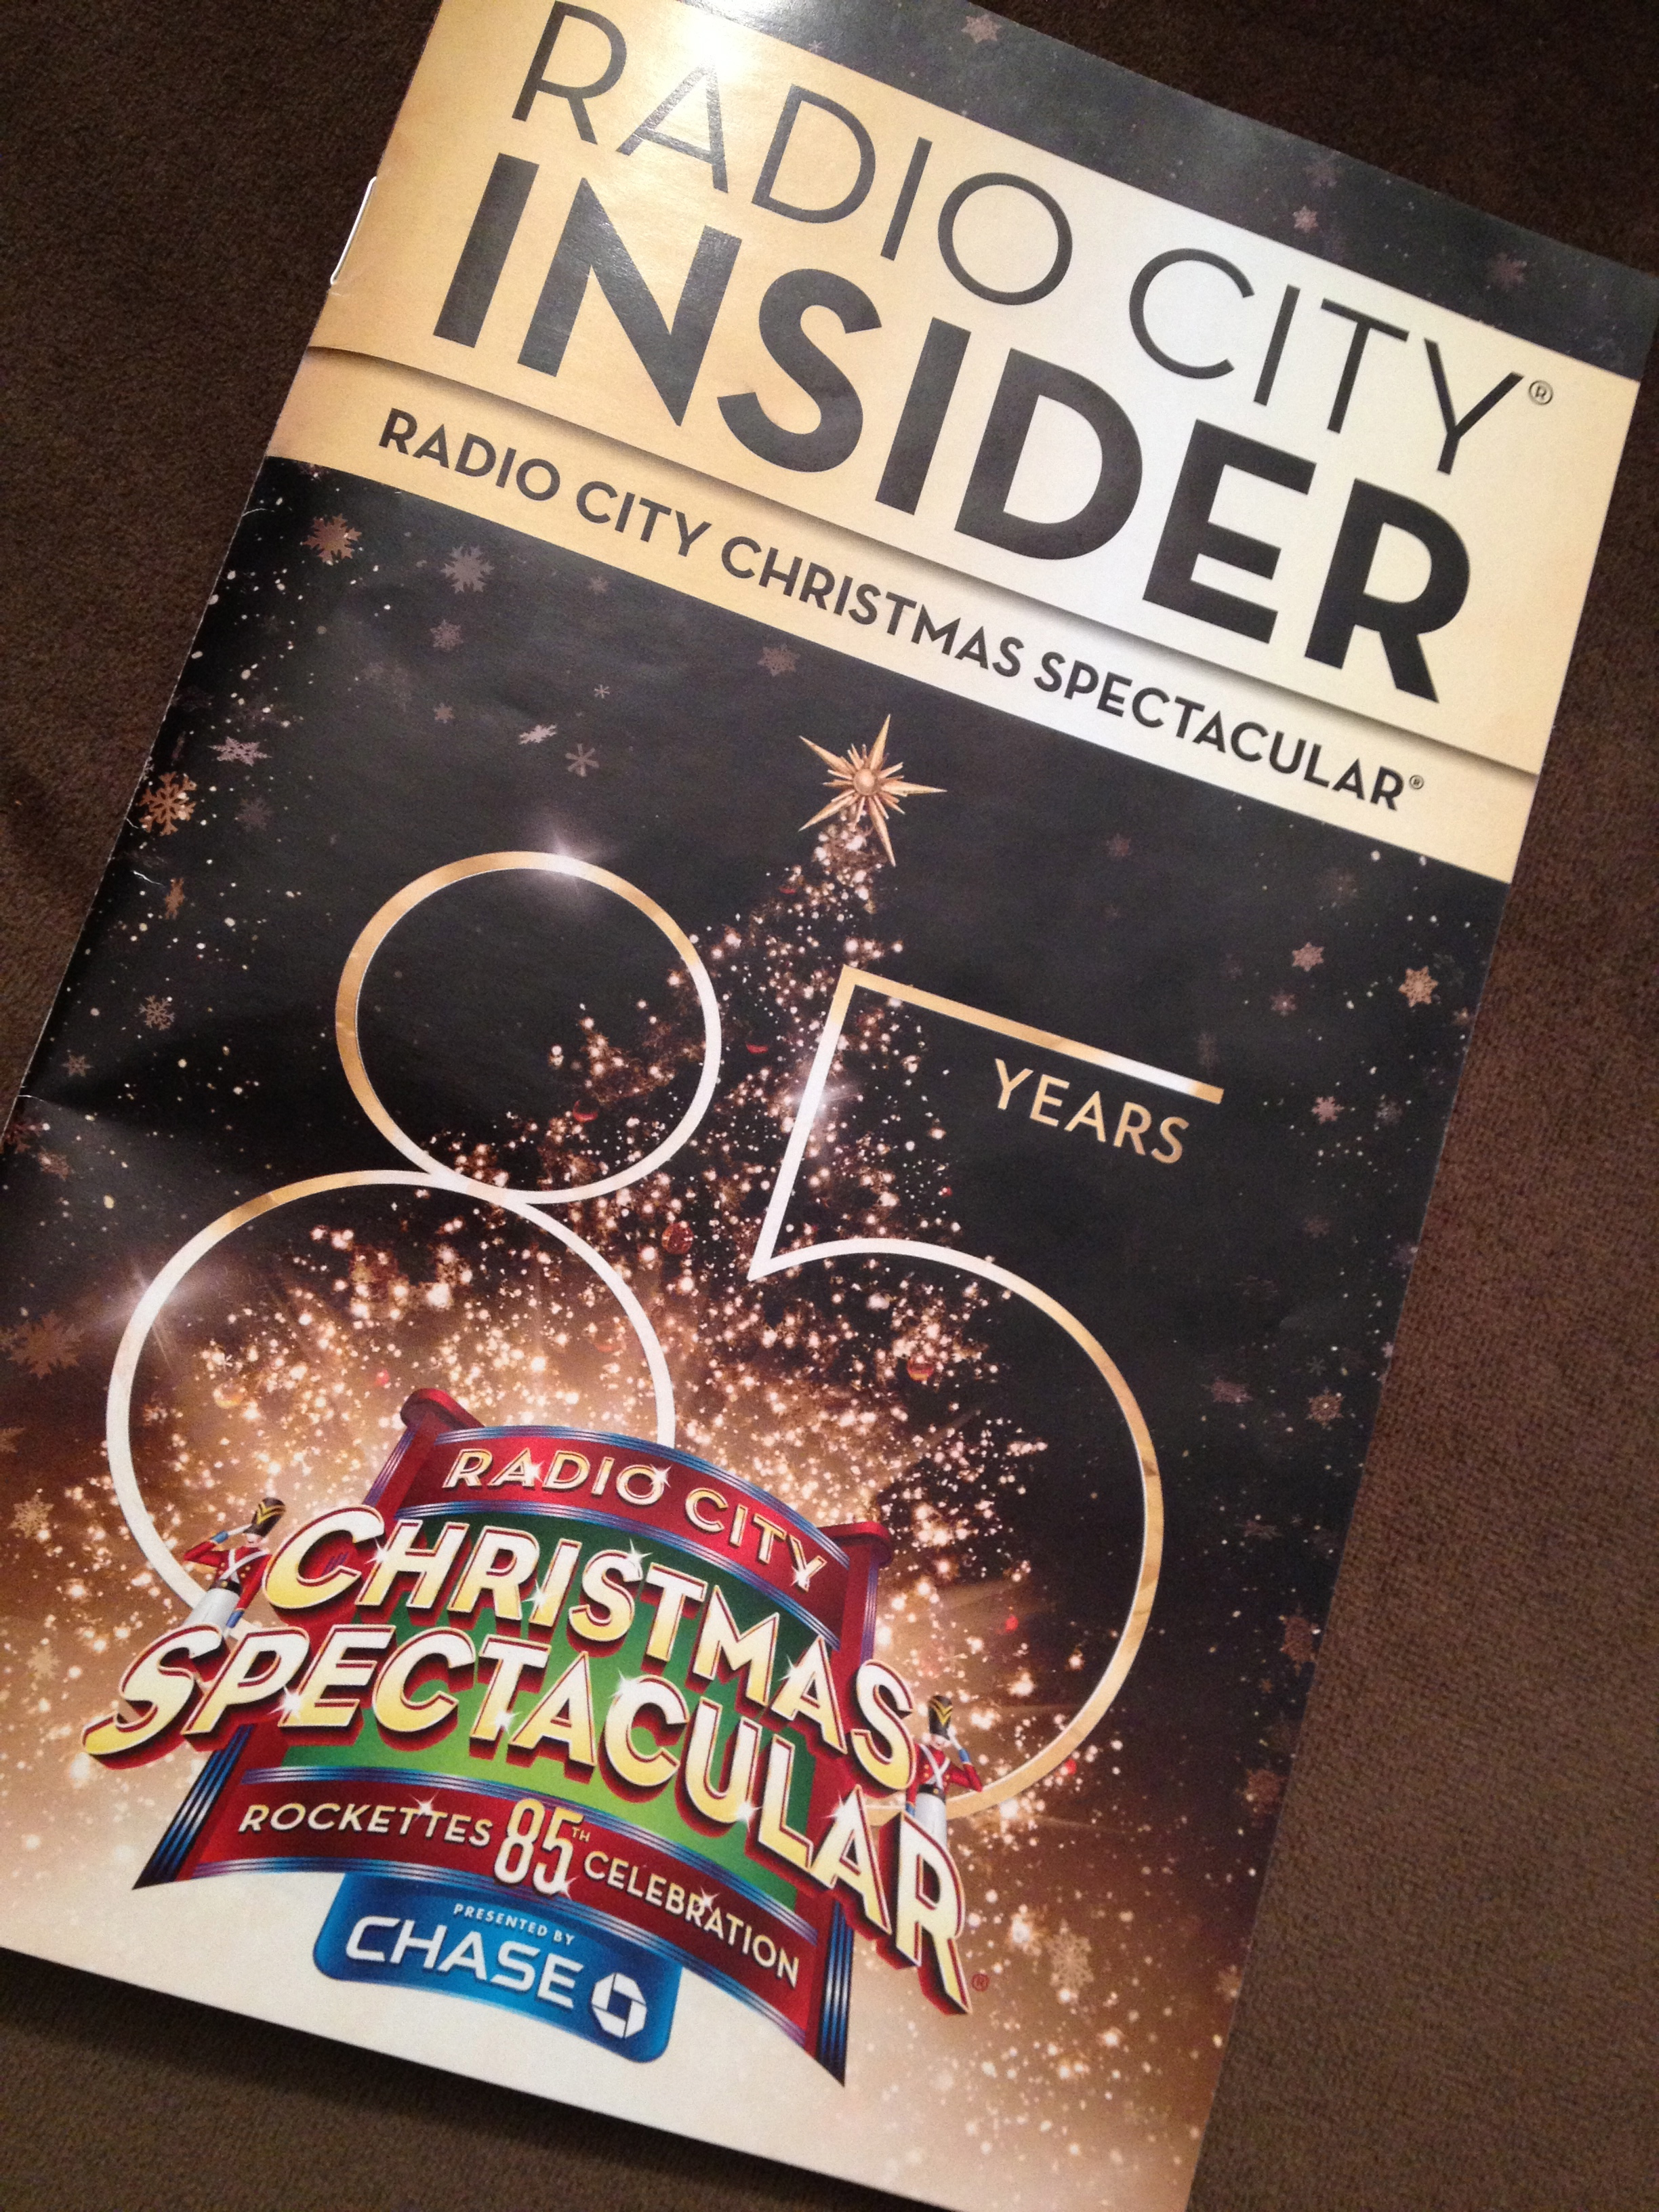 radio-city-christmas-spectacular-program3